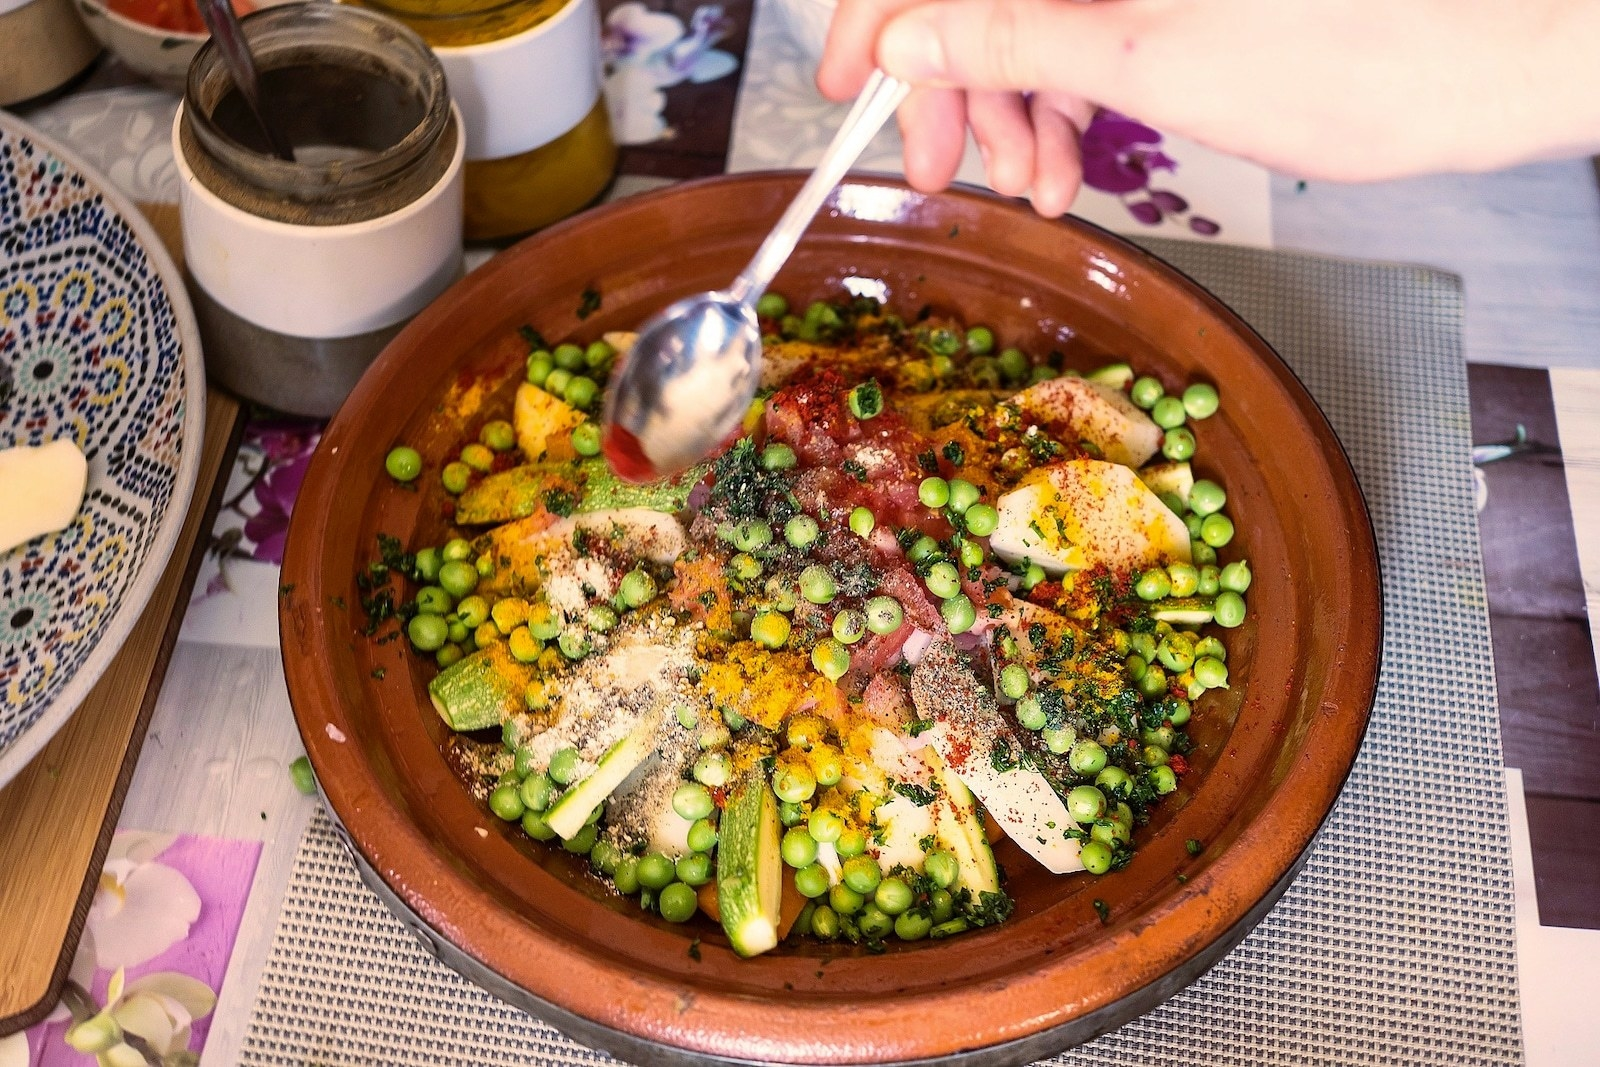 chicken Tajine with vegetables and a fresh Moroccan salad